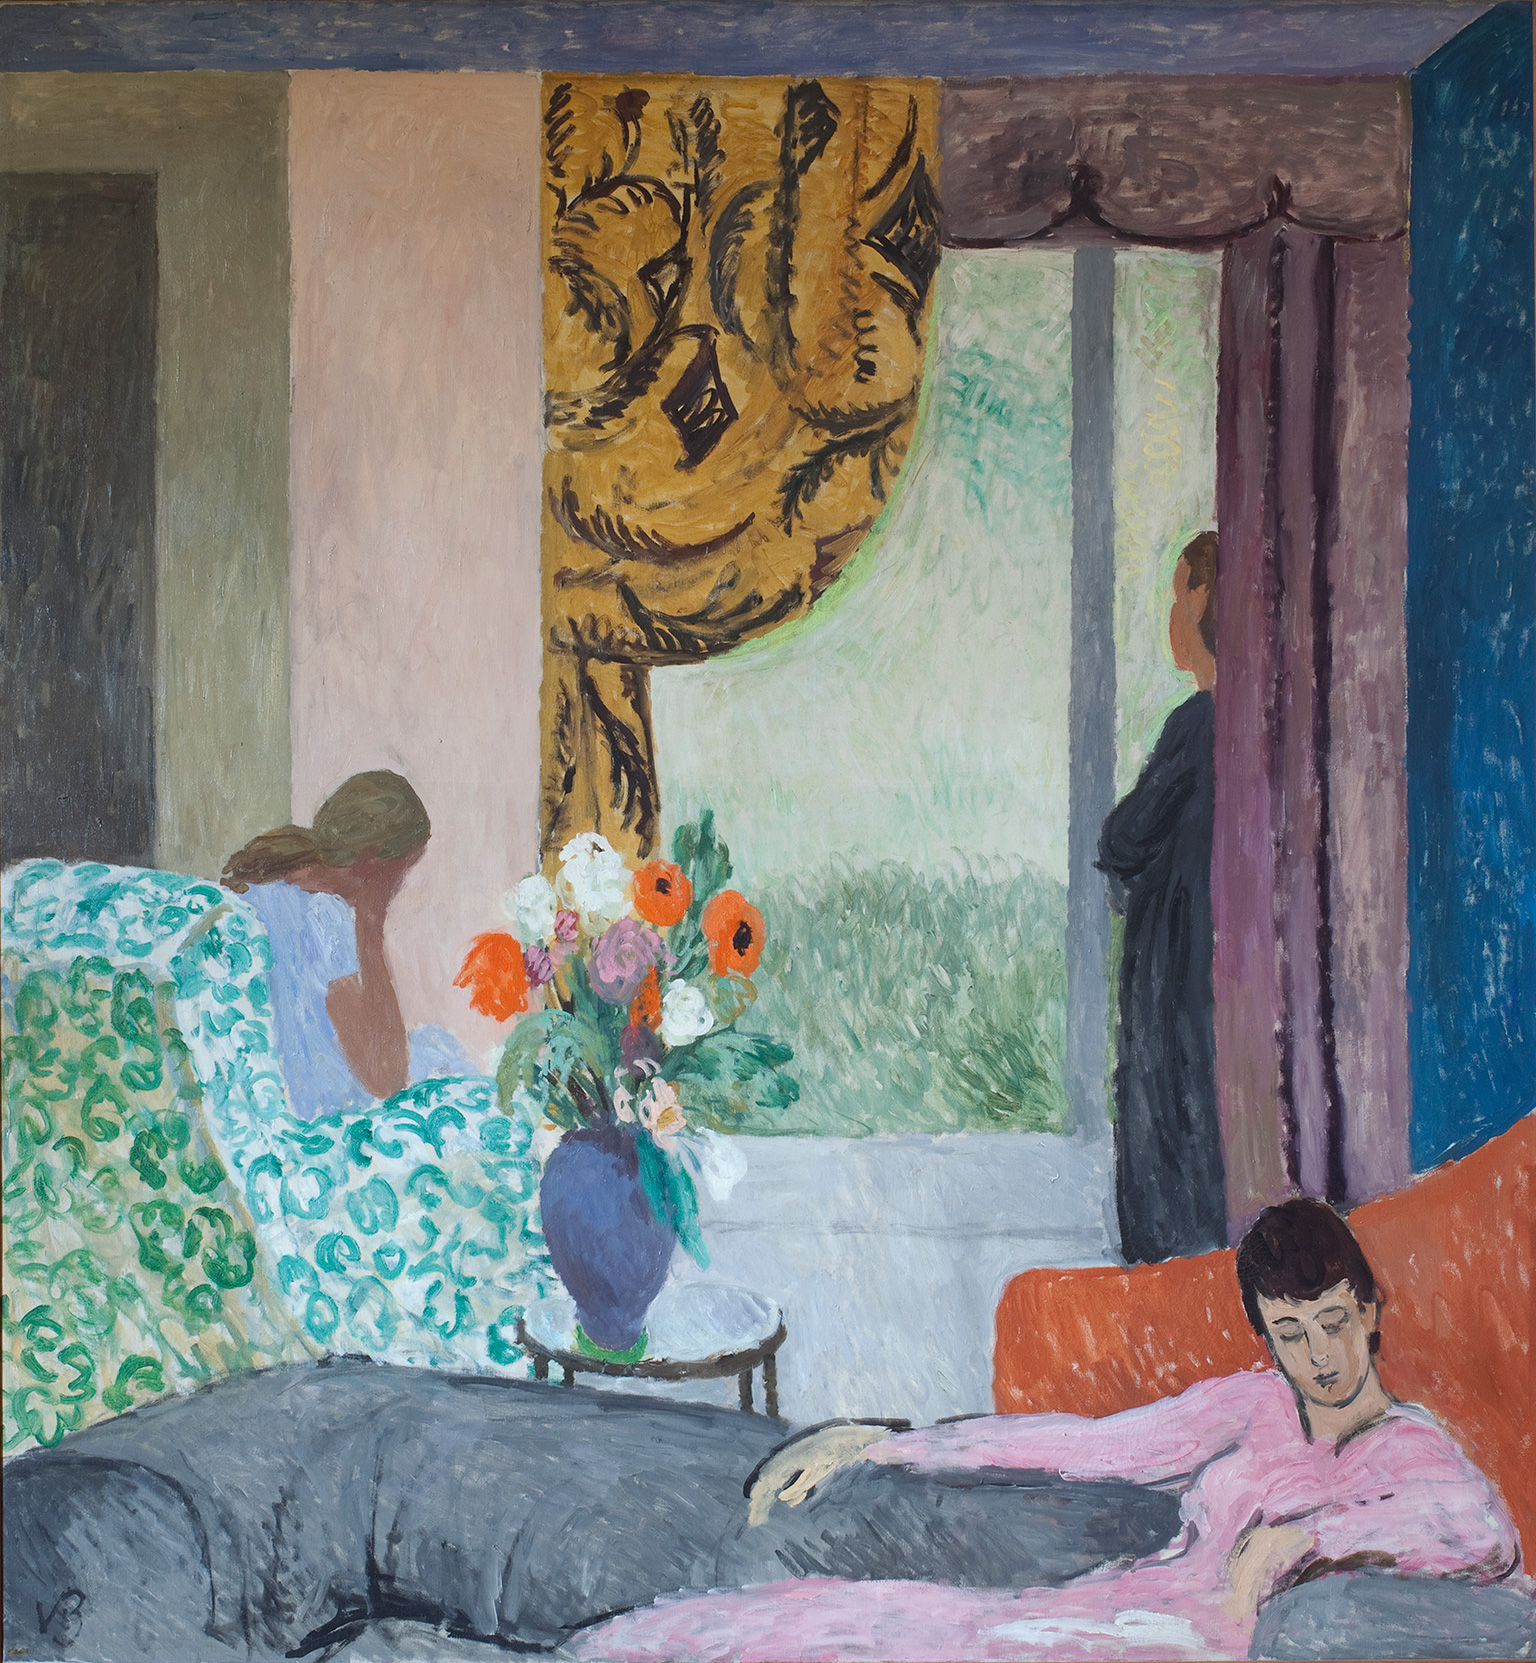 Vanessa Bell, The Other Room, late 1930s